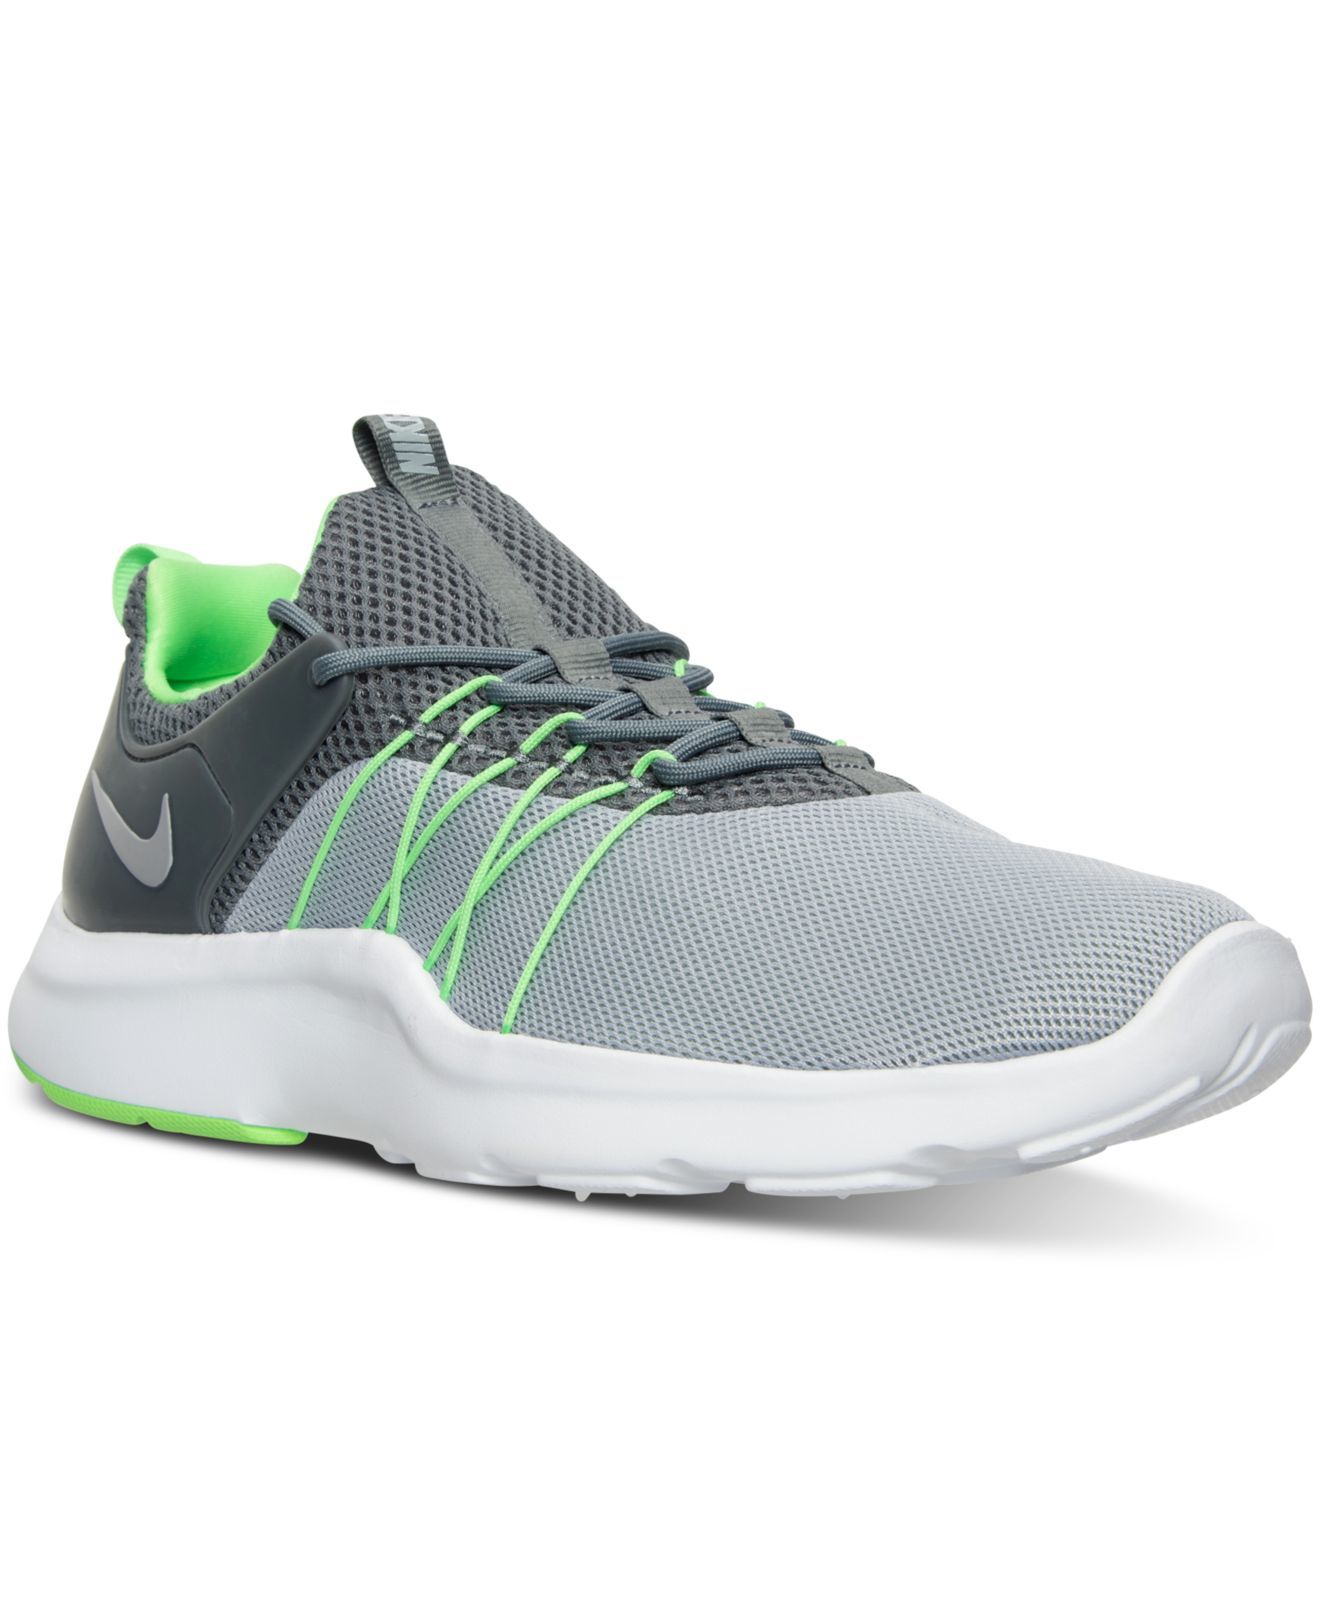 Use the Finish Line Store Locator to find your nearest retail shoe store locations where you can get the latest sneakers, athletic clothes and accessories. Plug in a zip code or city/state to browse all shoe stores near you to shop top sneaker brands like Nike, adidas, Jordan, Under Armour, Puma and more.